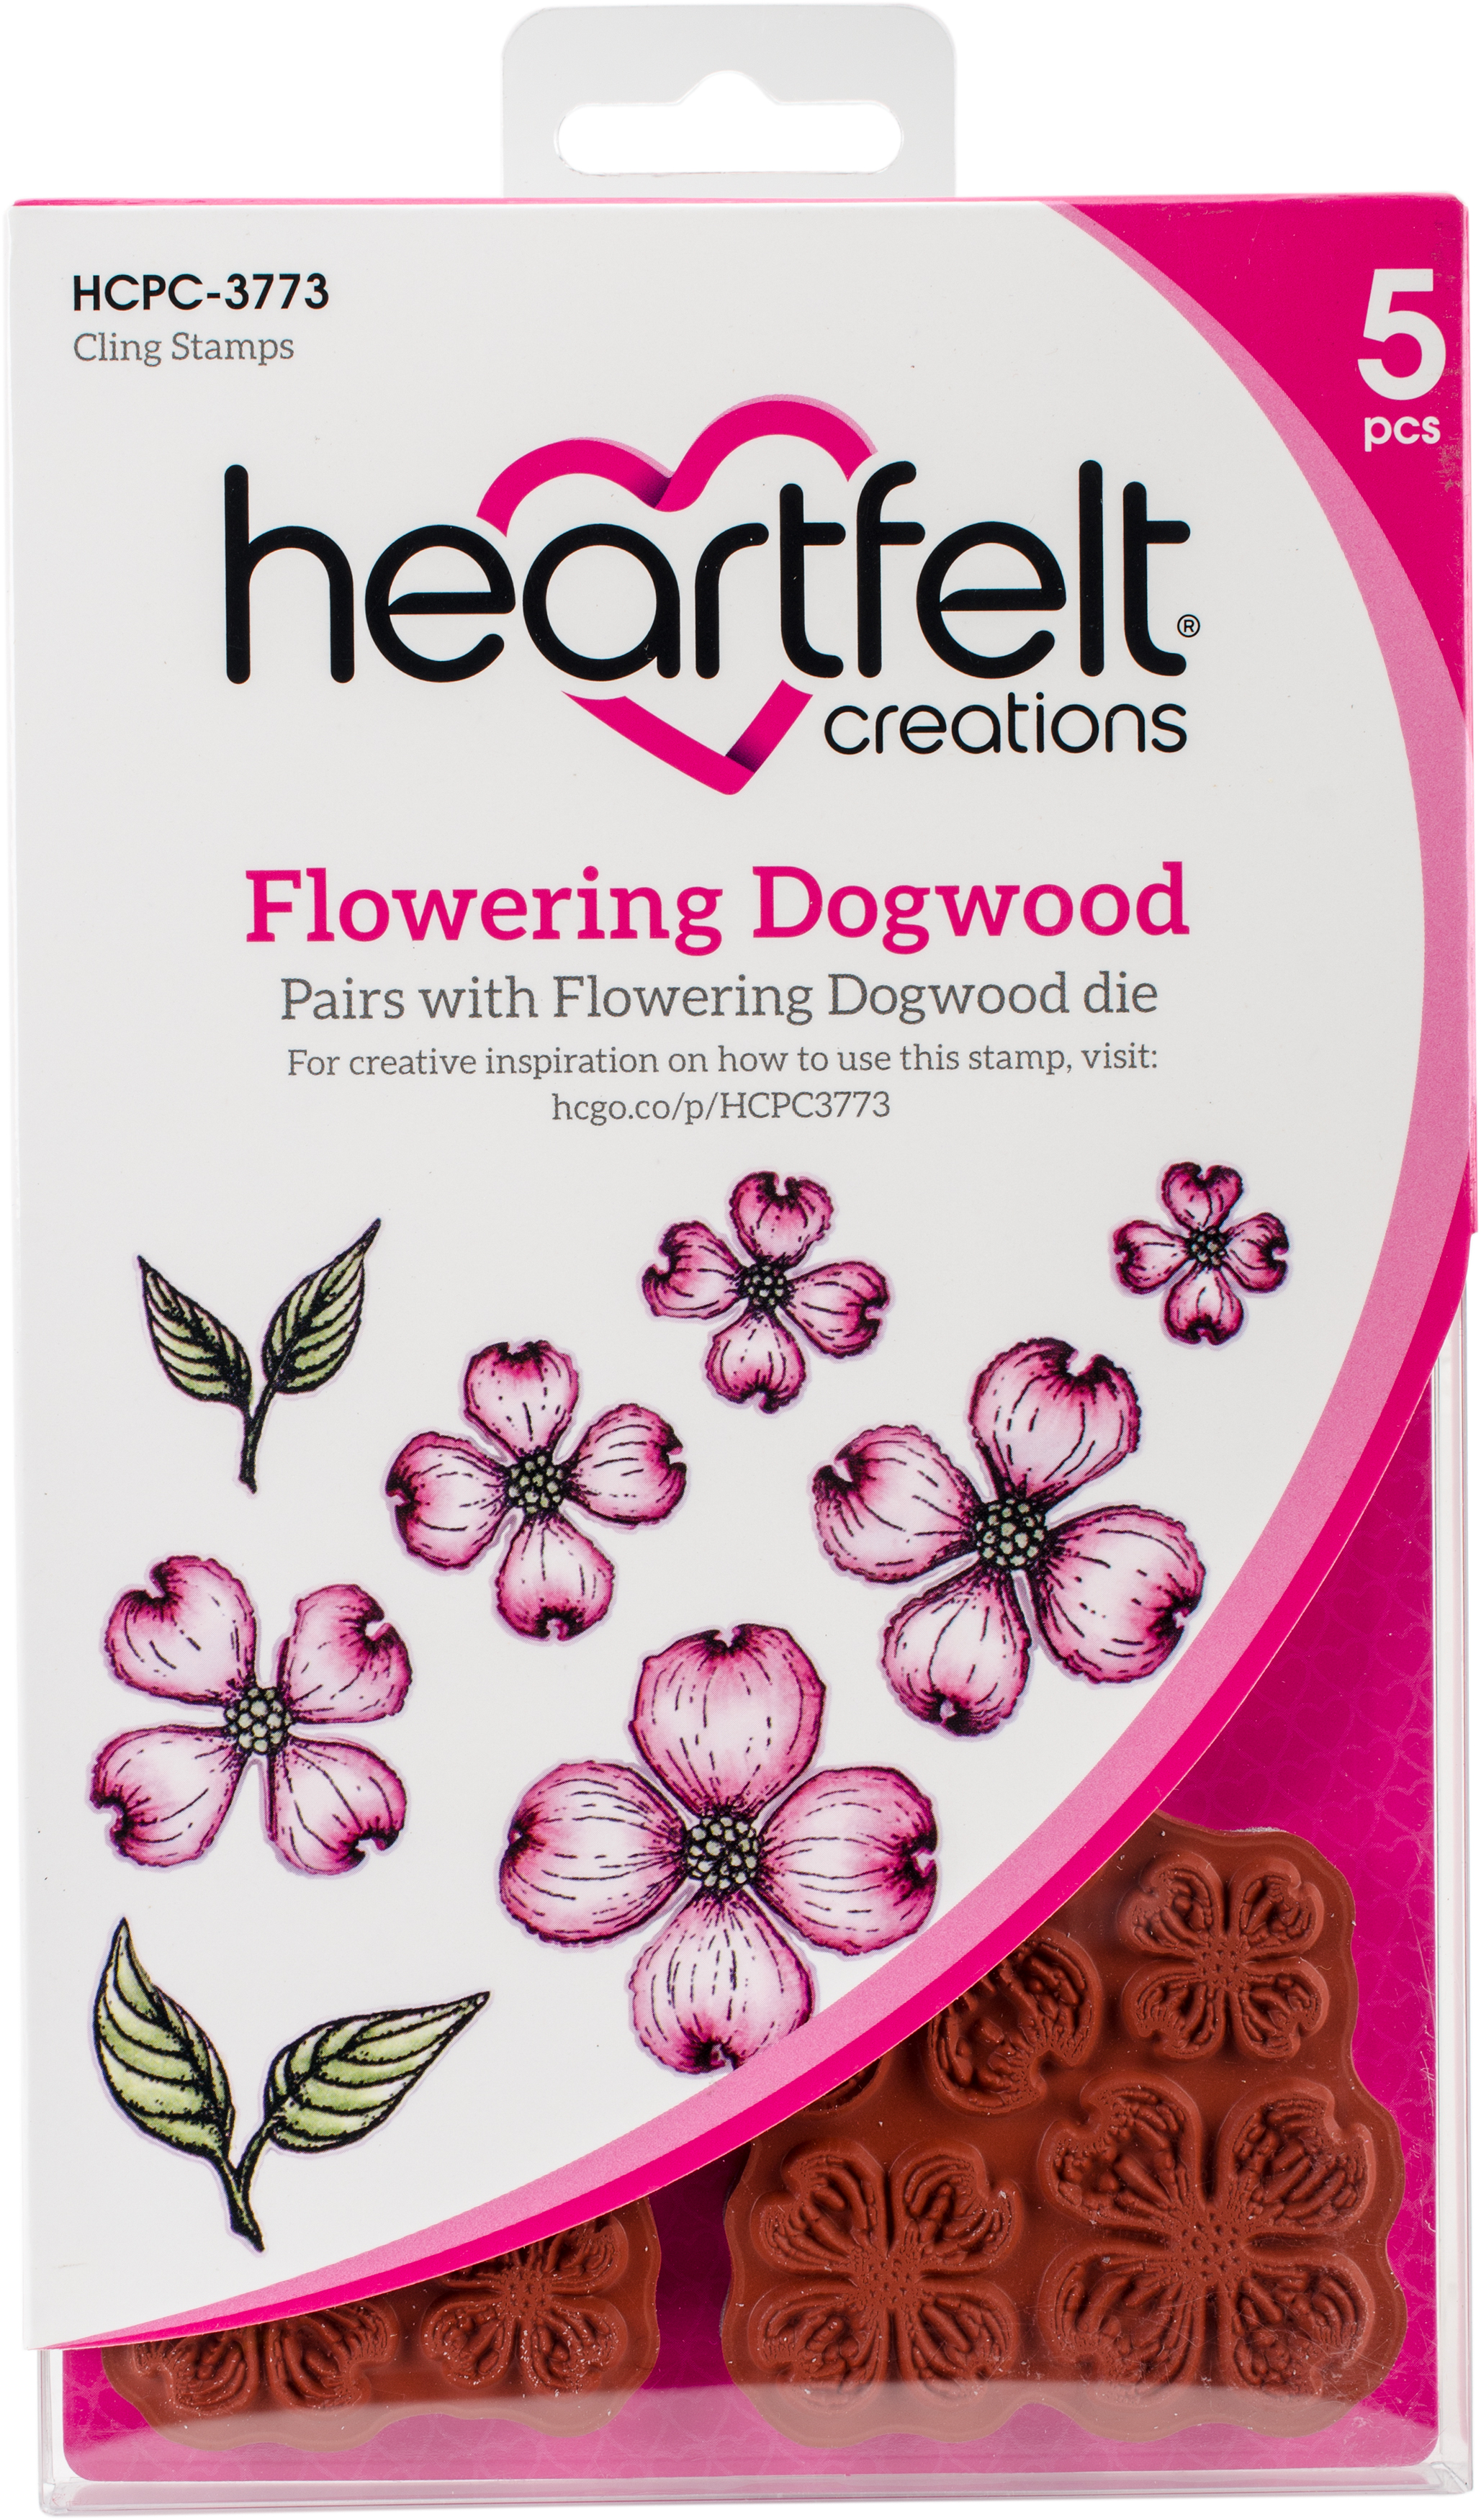 Heartfelt Creations Cling Rubber Stamp and die Set 5X6.5-Flowering Dogwood